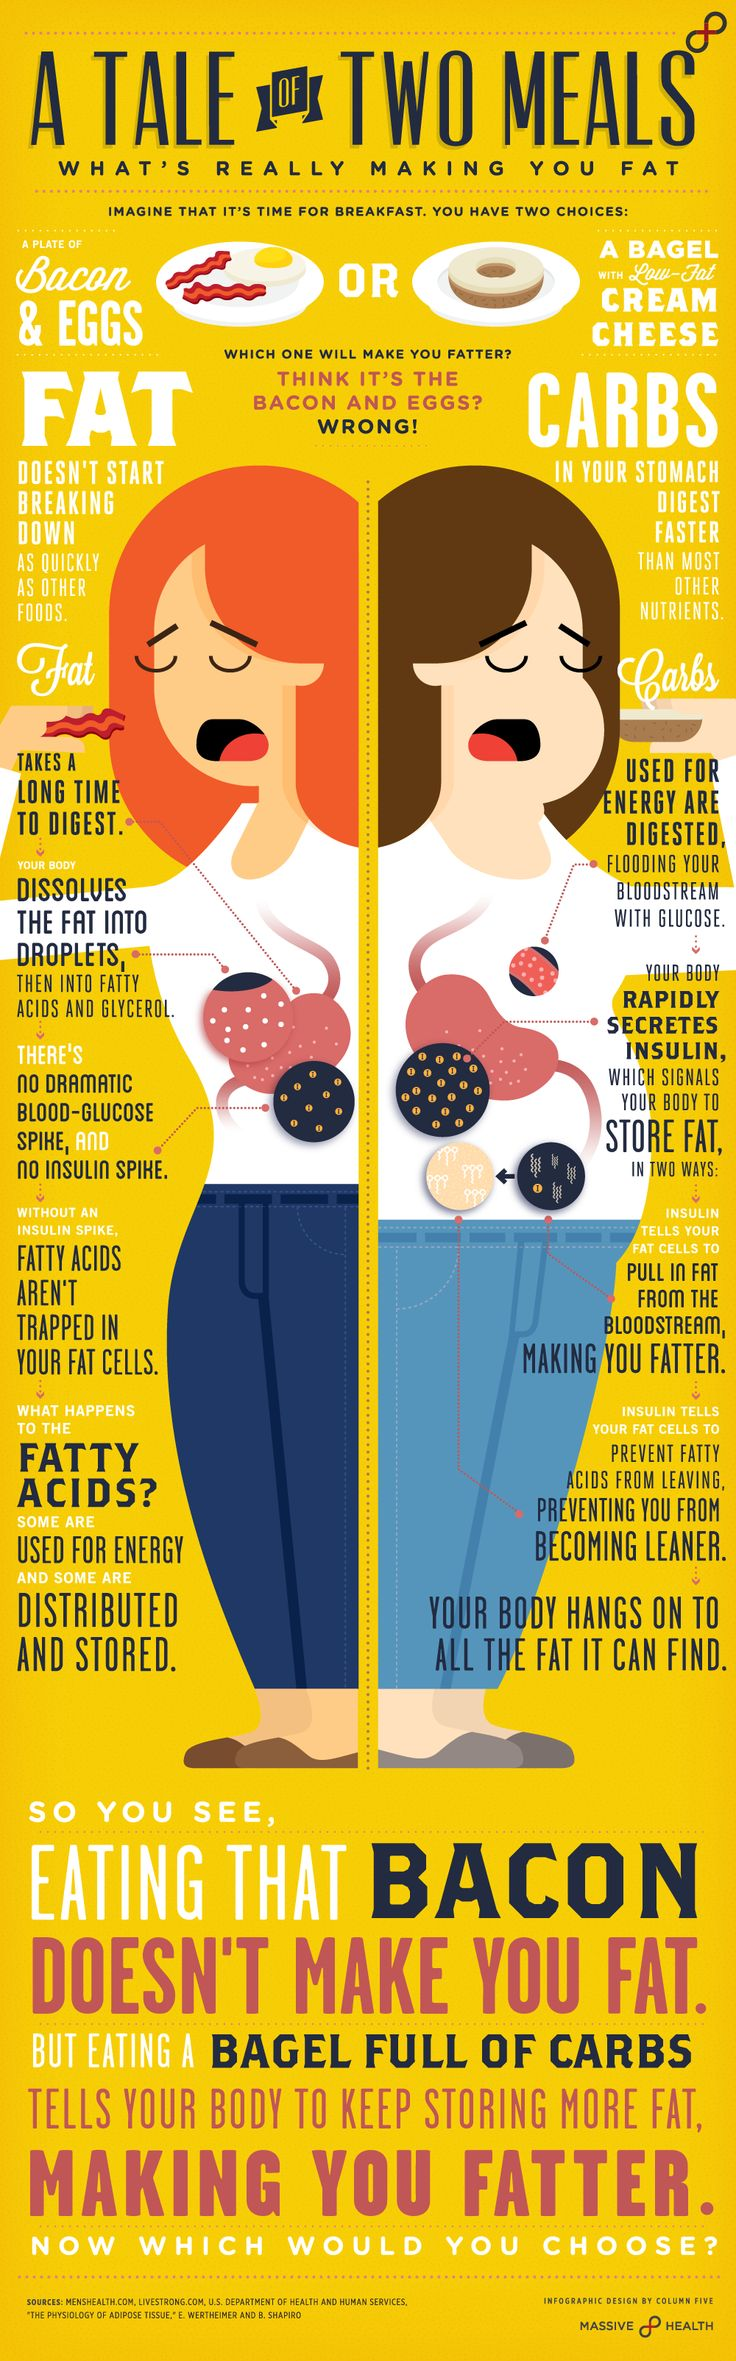 Low carb foods for diabetics Infographic on A Tale of Two Meals: Fat vs Carbs What's Making You Fat ? link Blood Sugar and Hunger High-glycemic chart Low-glycemic chart link